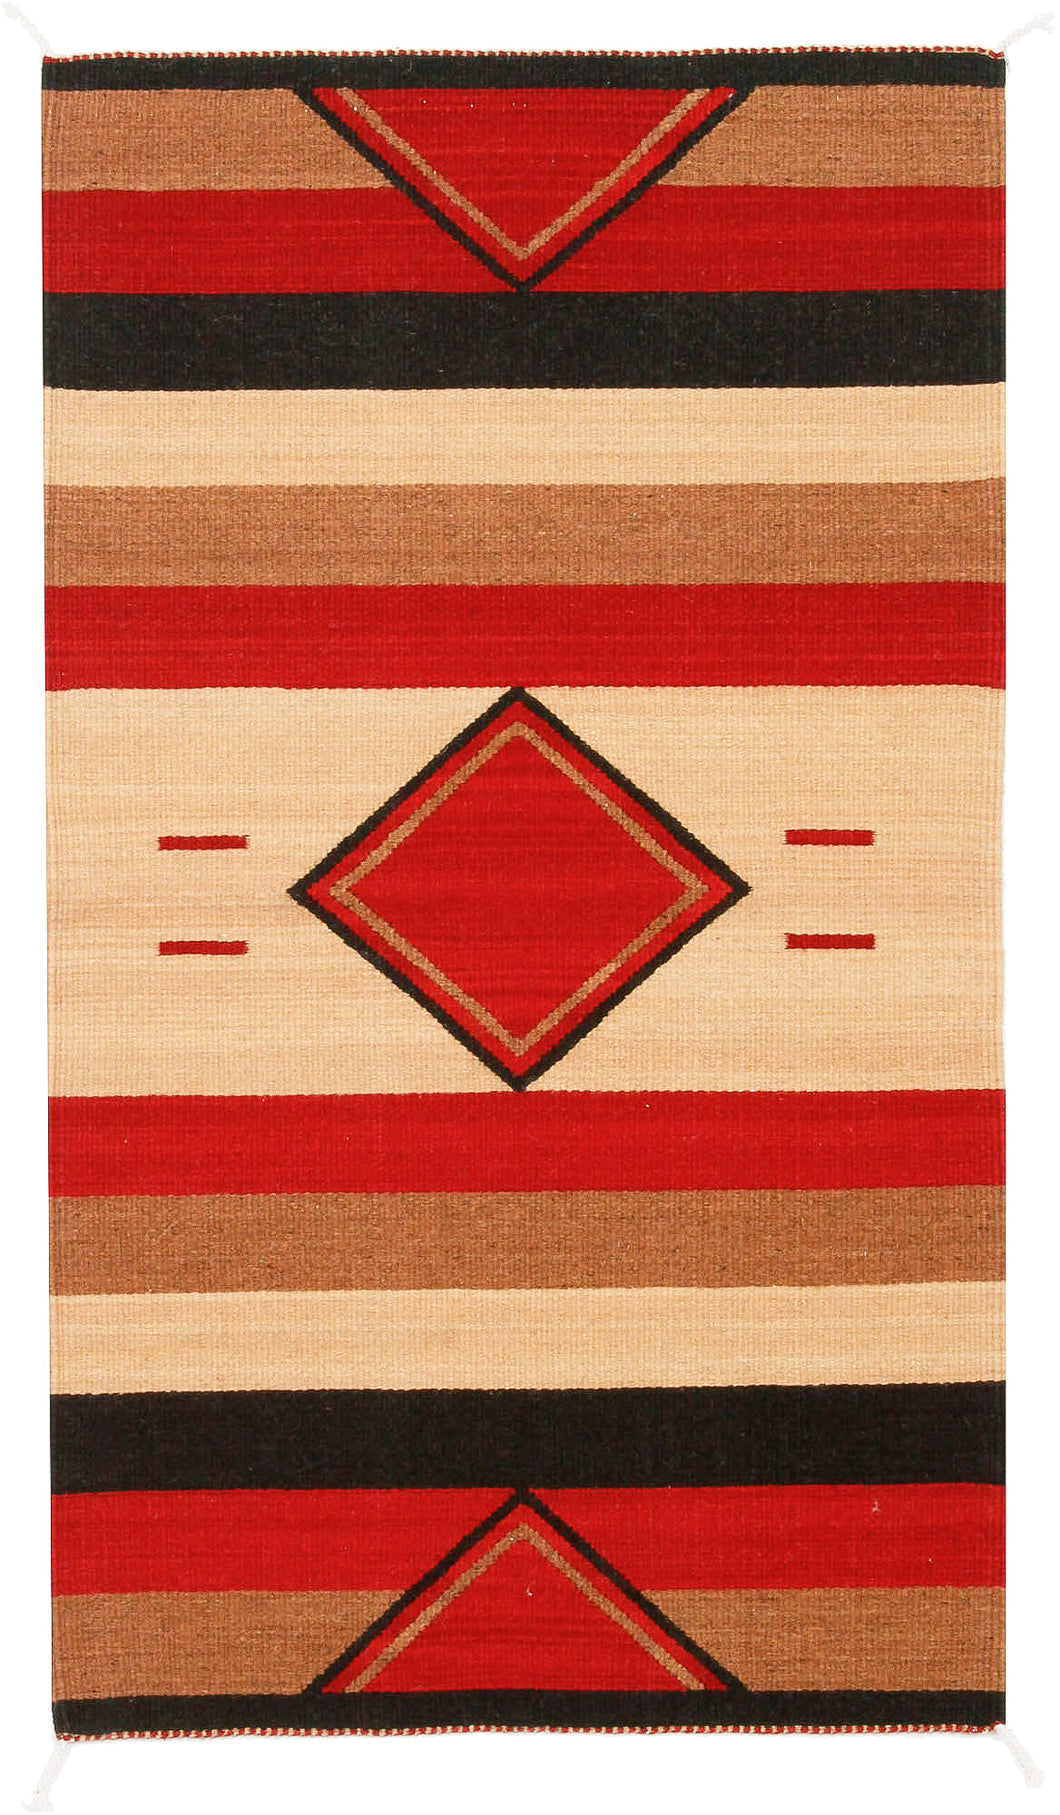 Handwoven Zapotec Indian Rug - Rombos Wool Oaxacan Textile